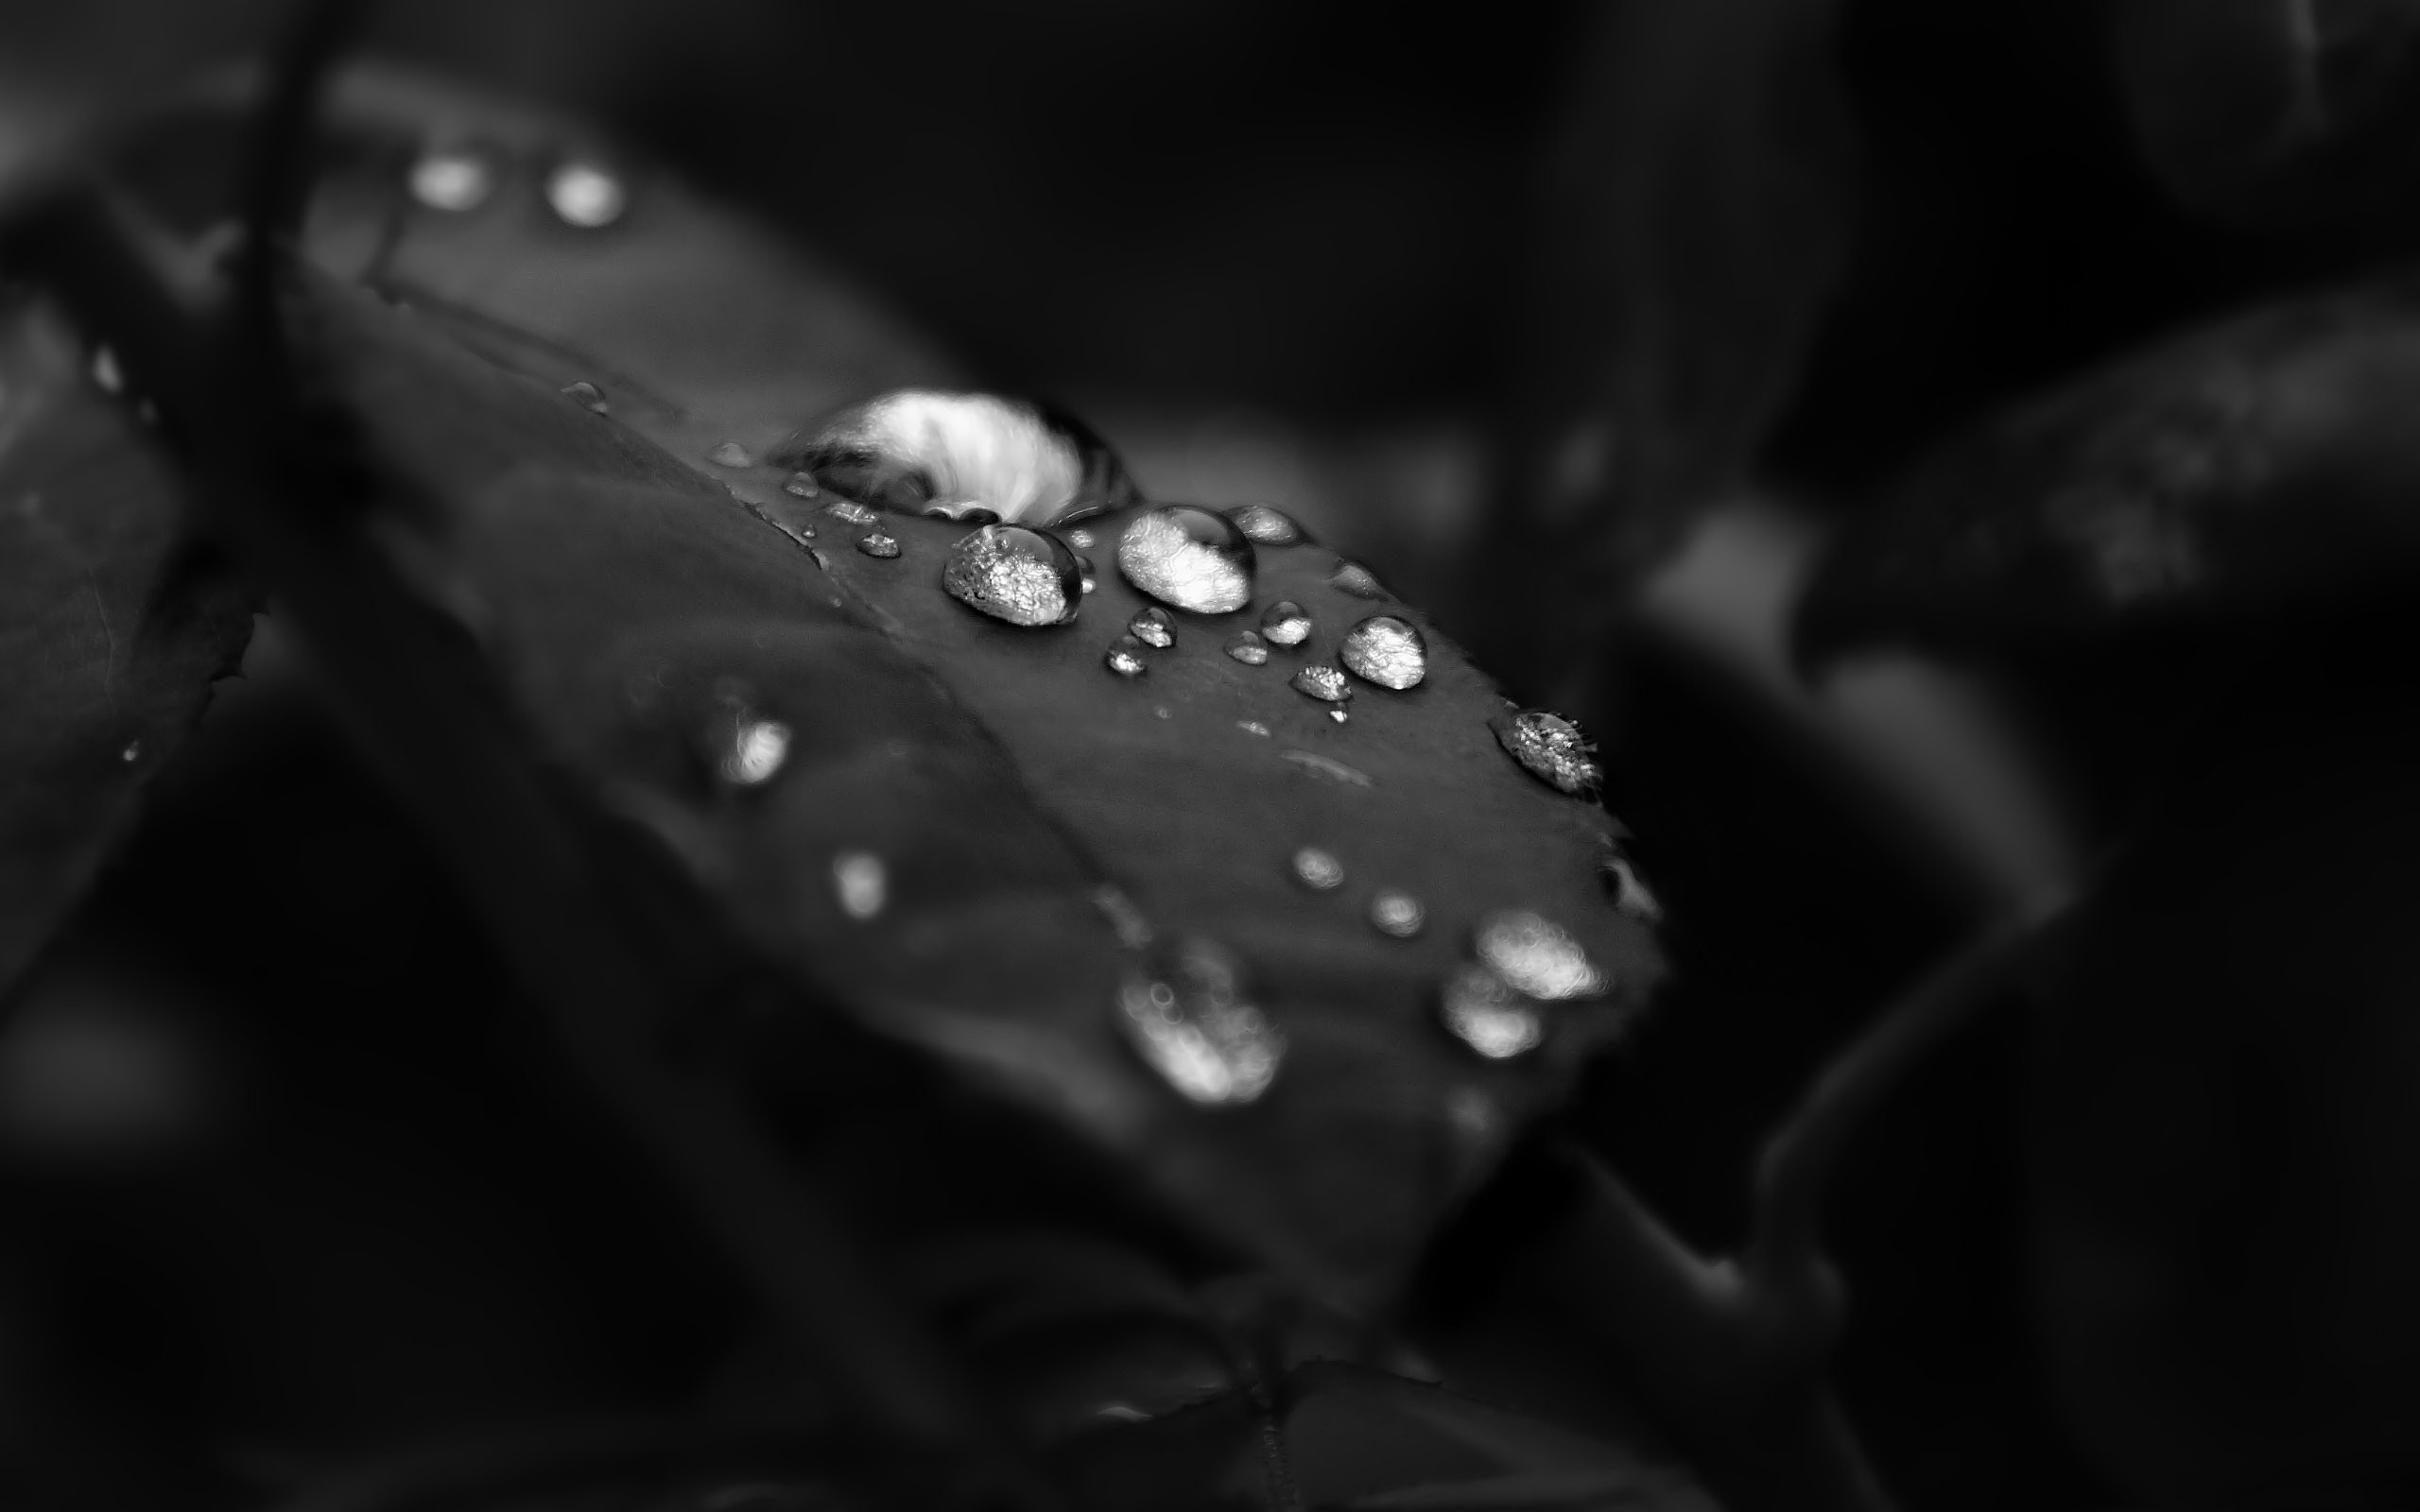 Black And White Leaf Water Drops Wallpaper 2560x1600